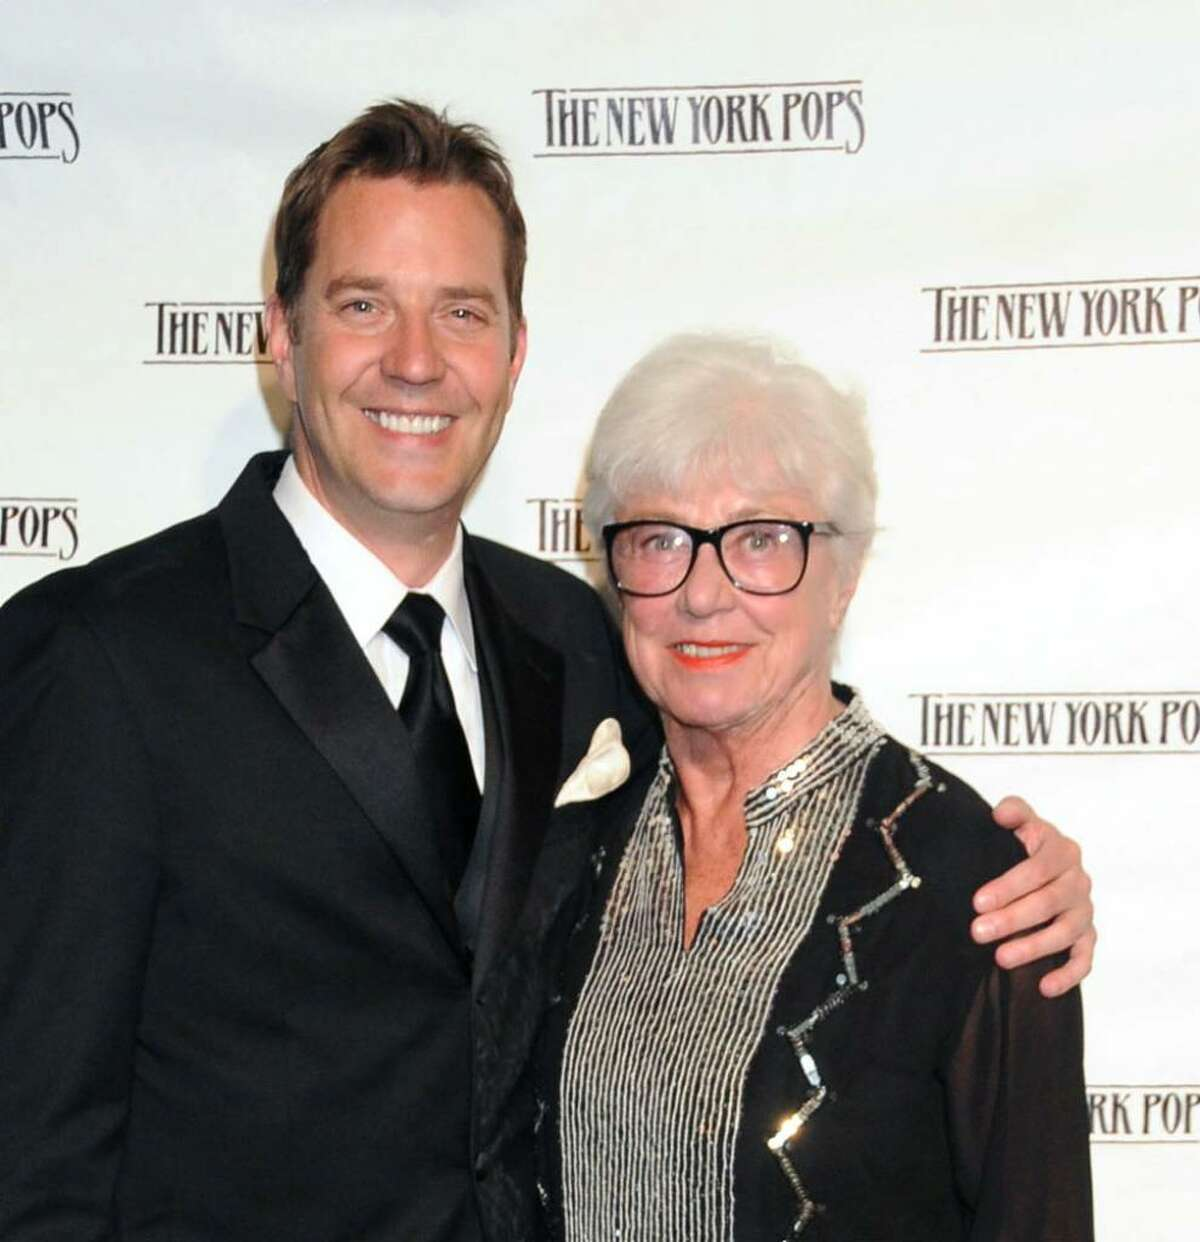 Ruth Henderson, widow of New York Pops founder Skitch Henderson stands with Steven Reineke who is the orchestra's new musical director, succeeding Henderson.